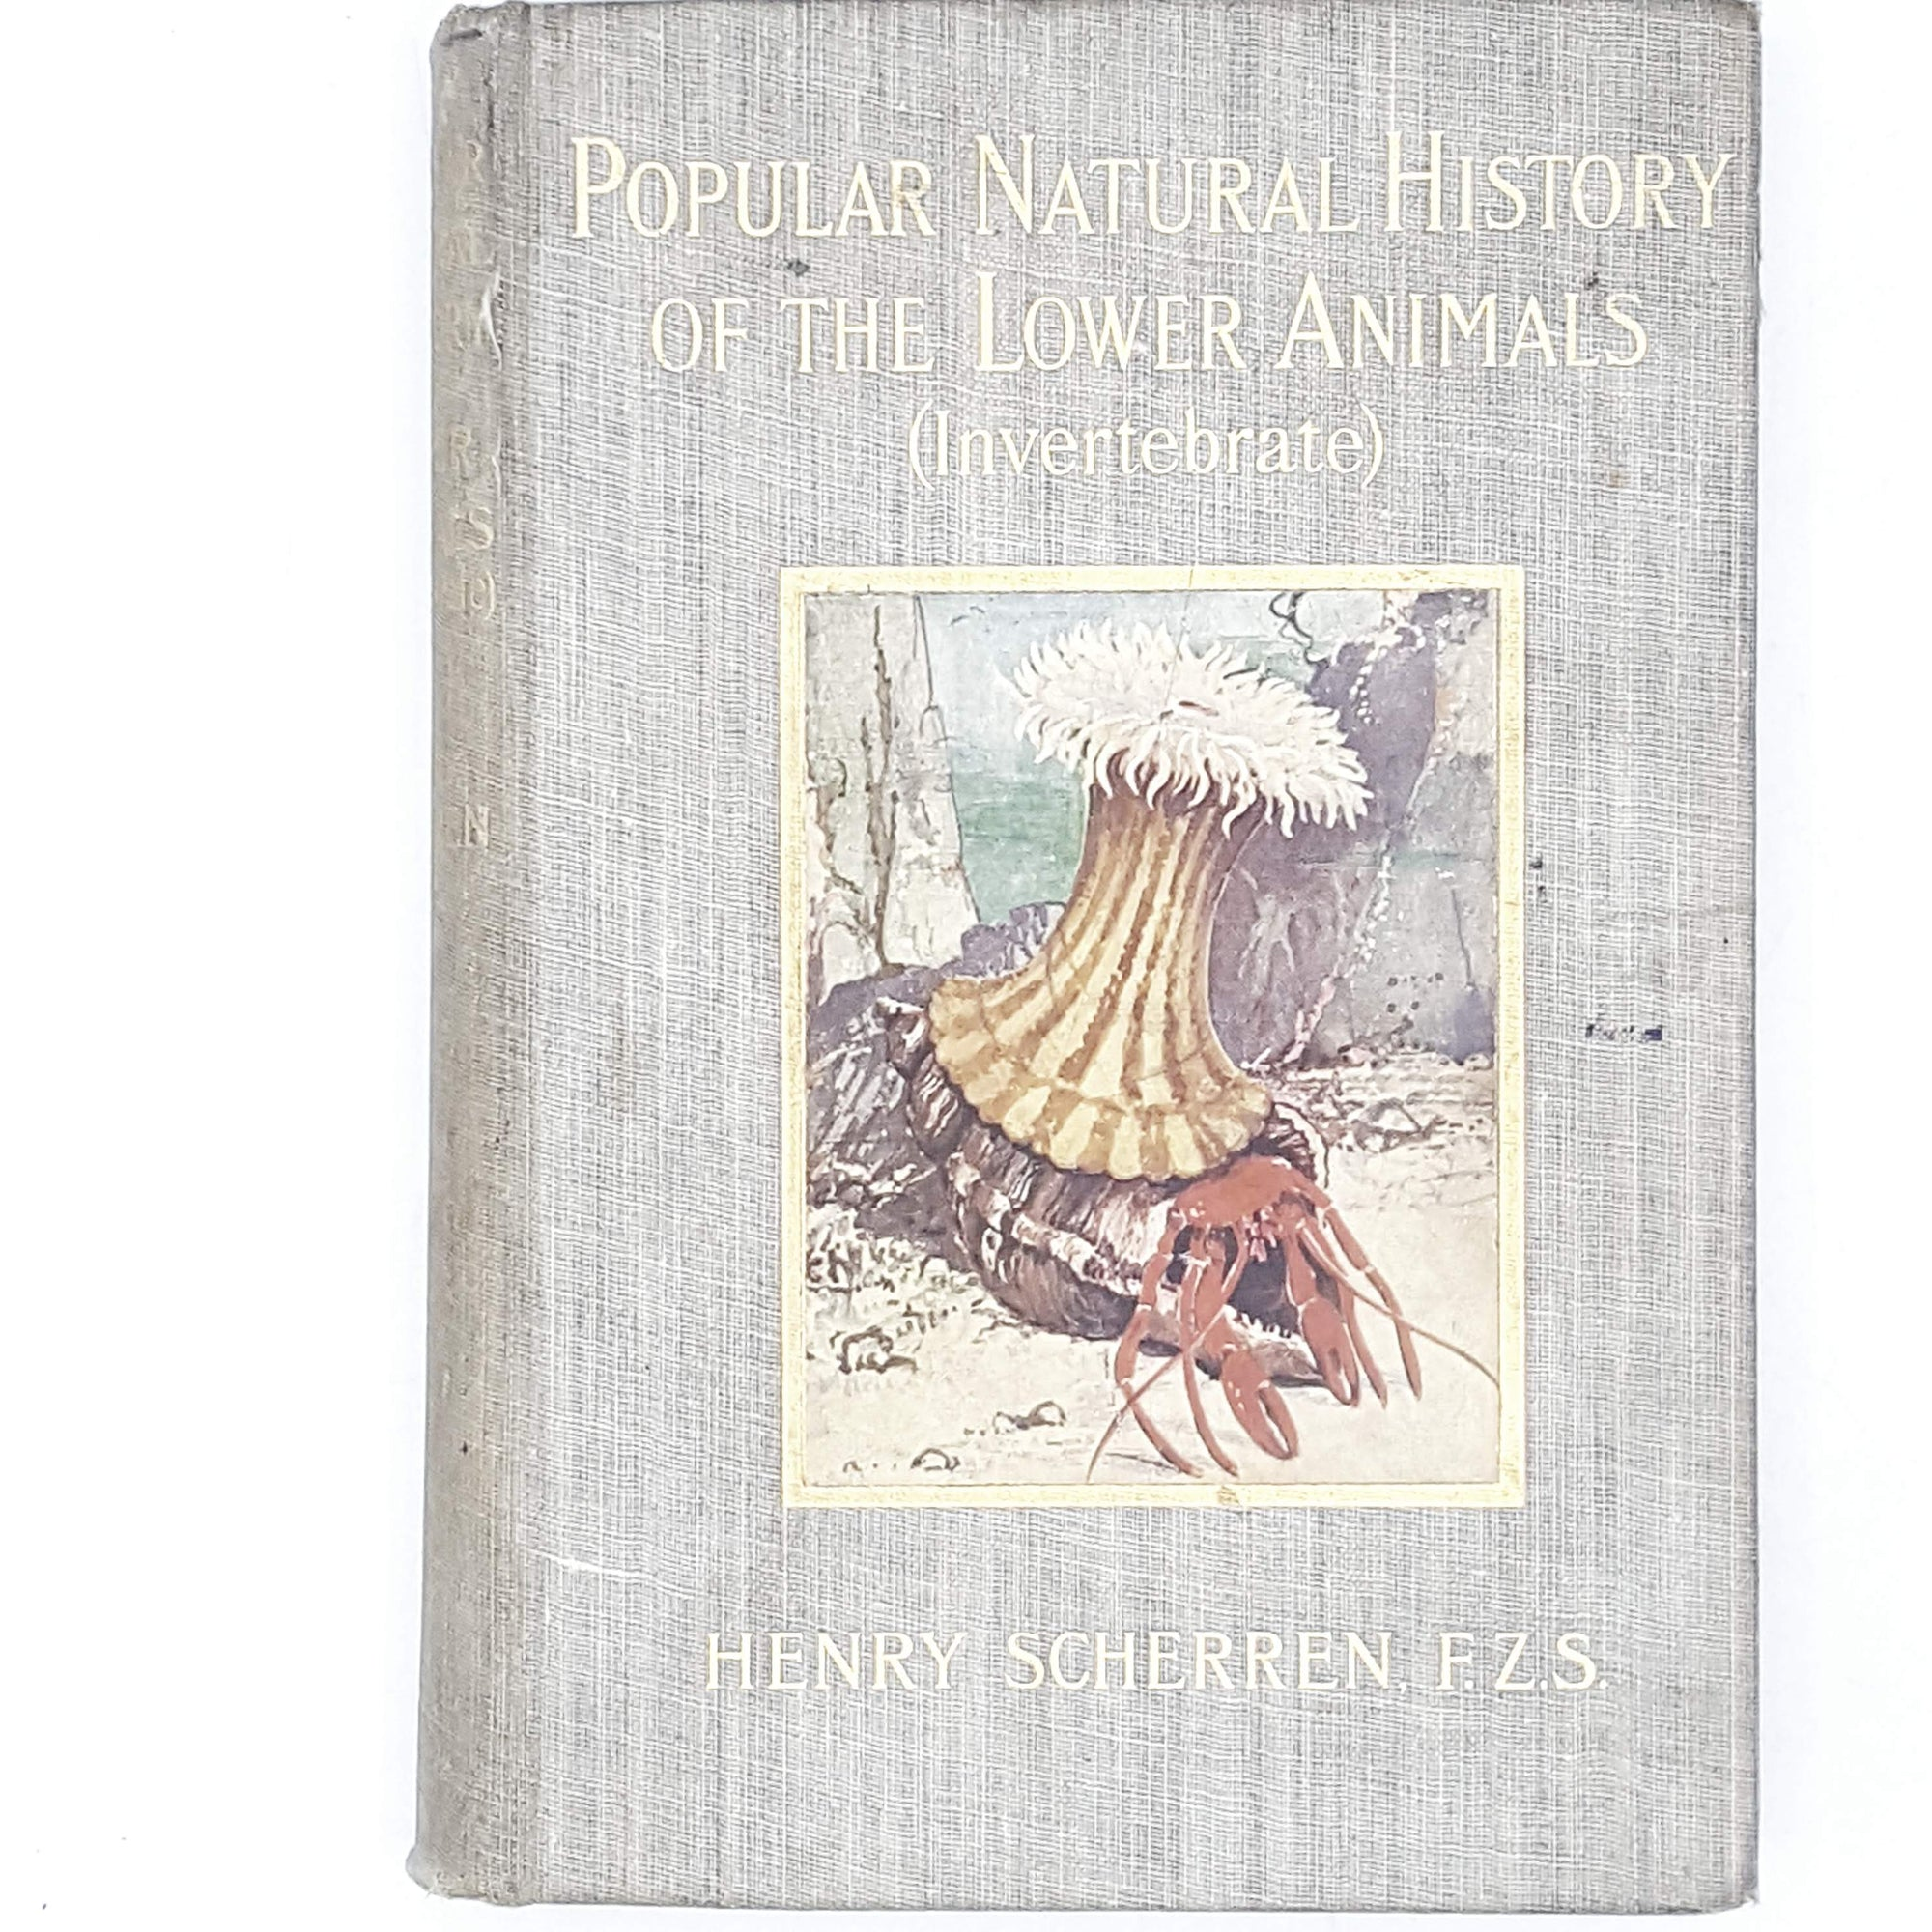 Popular Natural History of the Lower Animals (Invertebrate) by Henry Scherren 1903